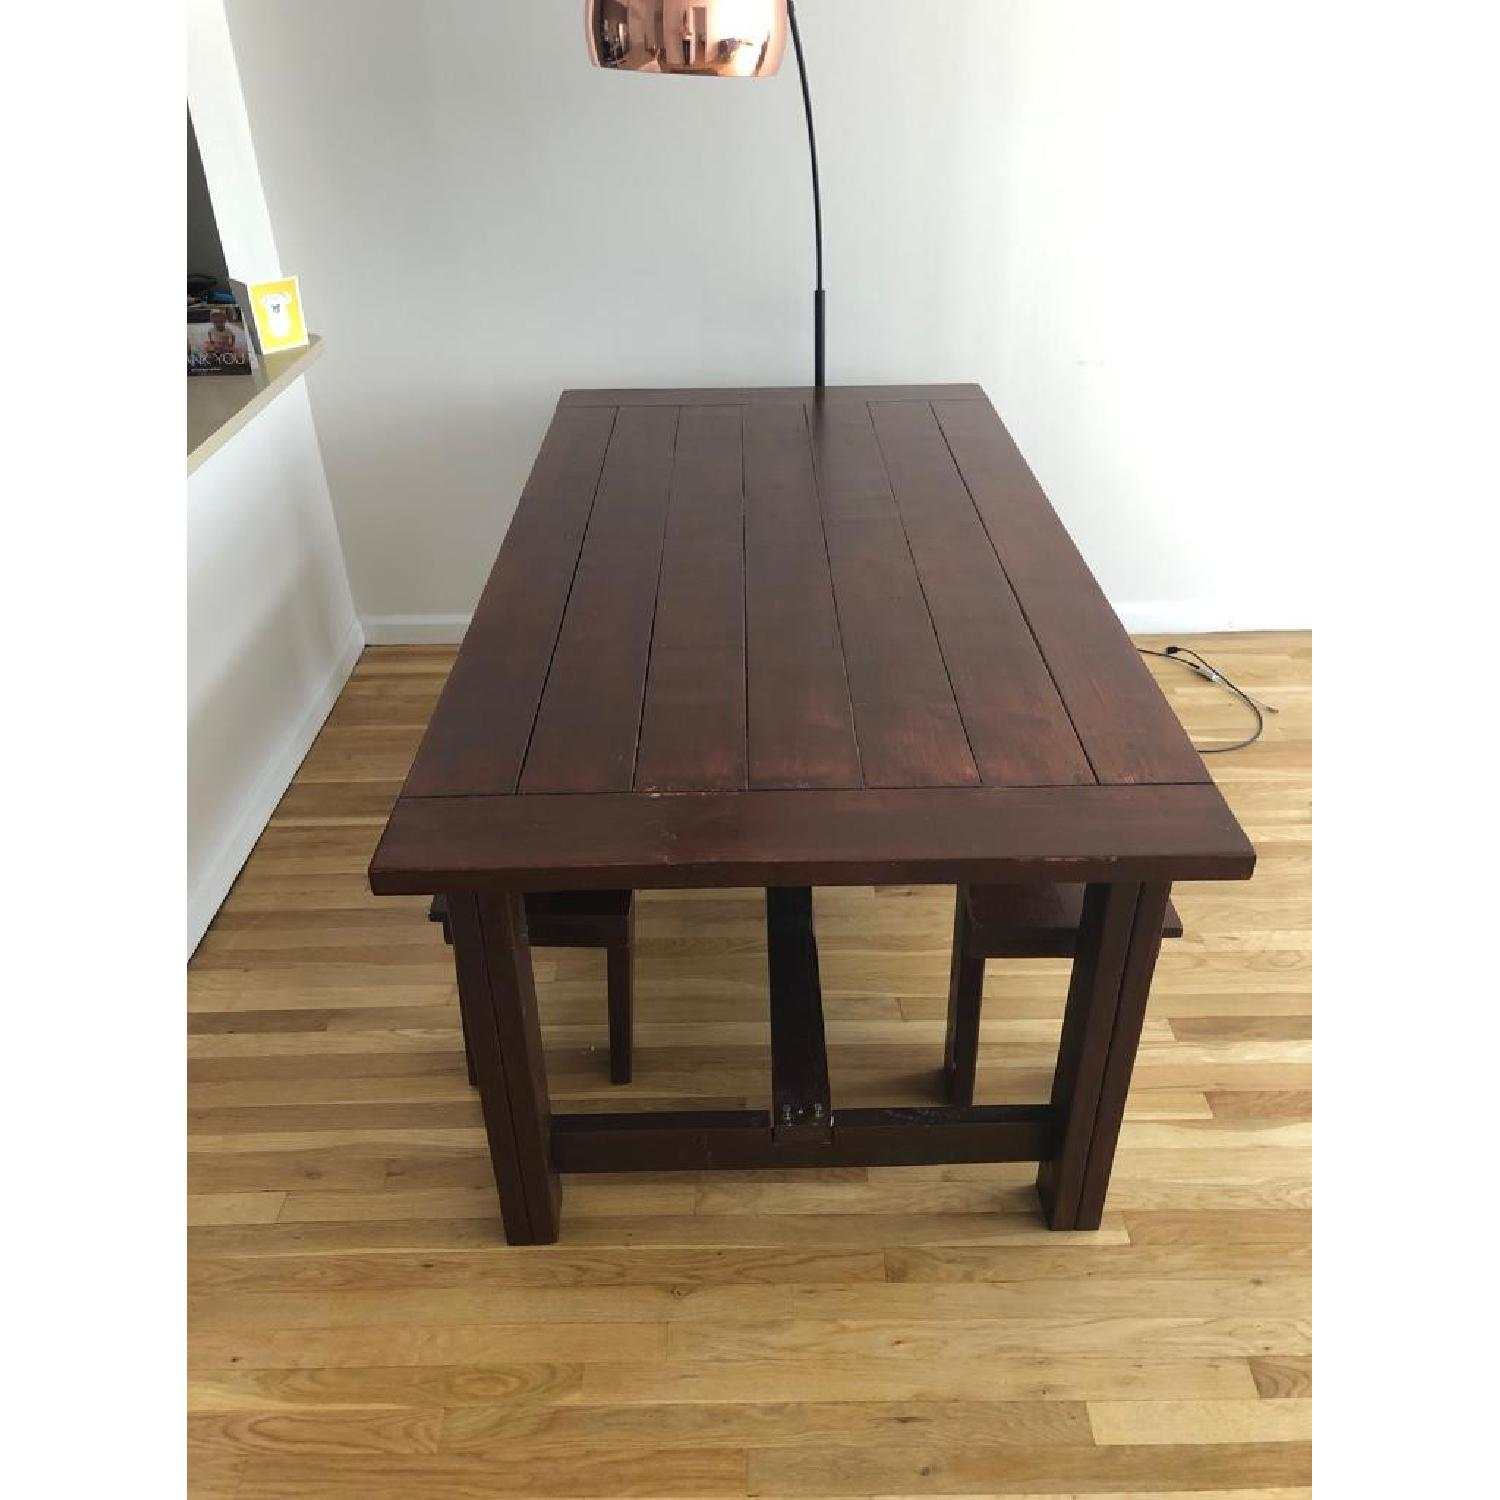 Custom Wood Farmhouse Rustic Dining Table w/ 2 Benches - image-4